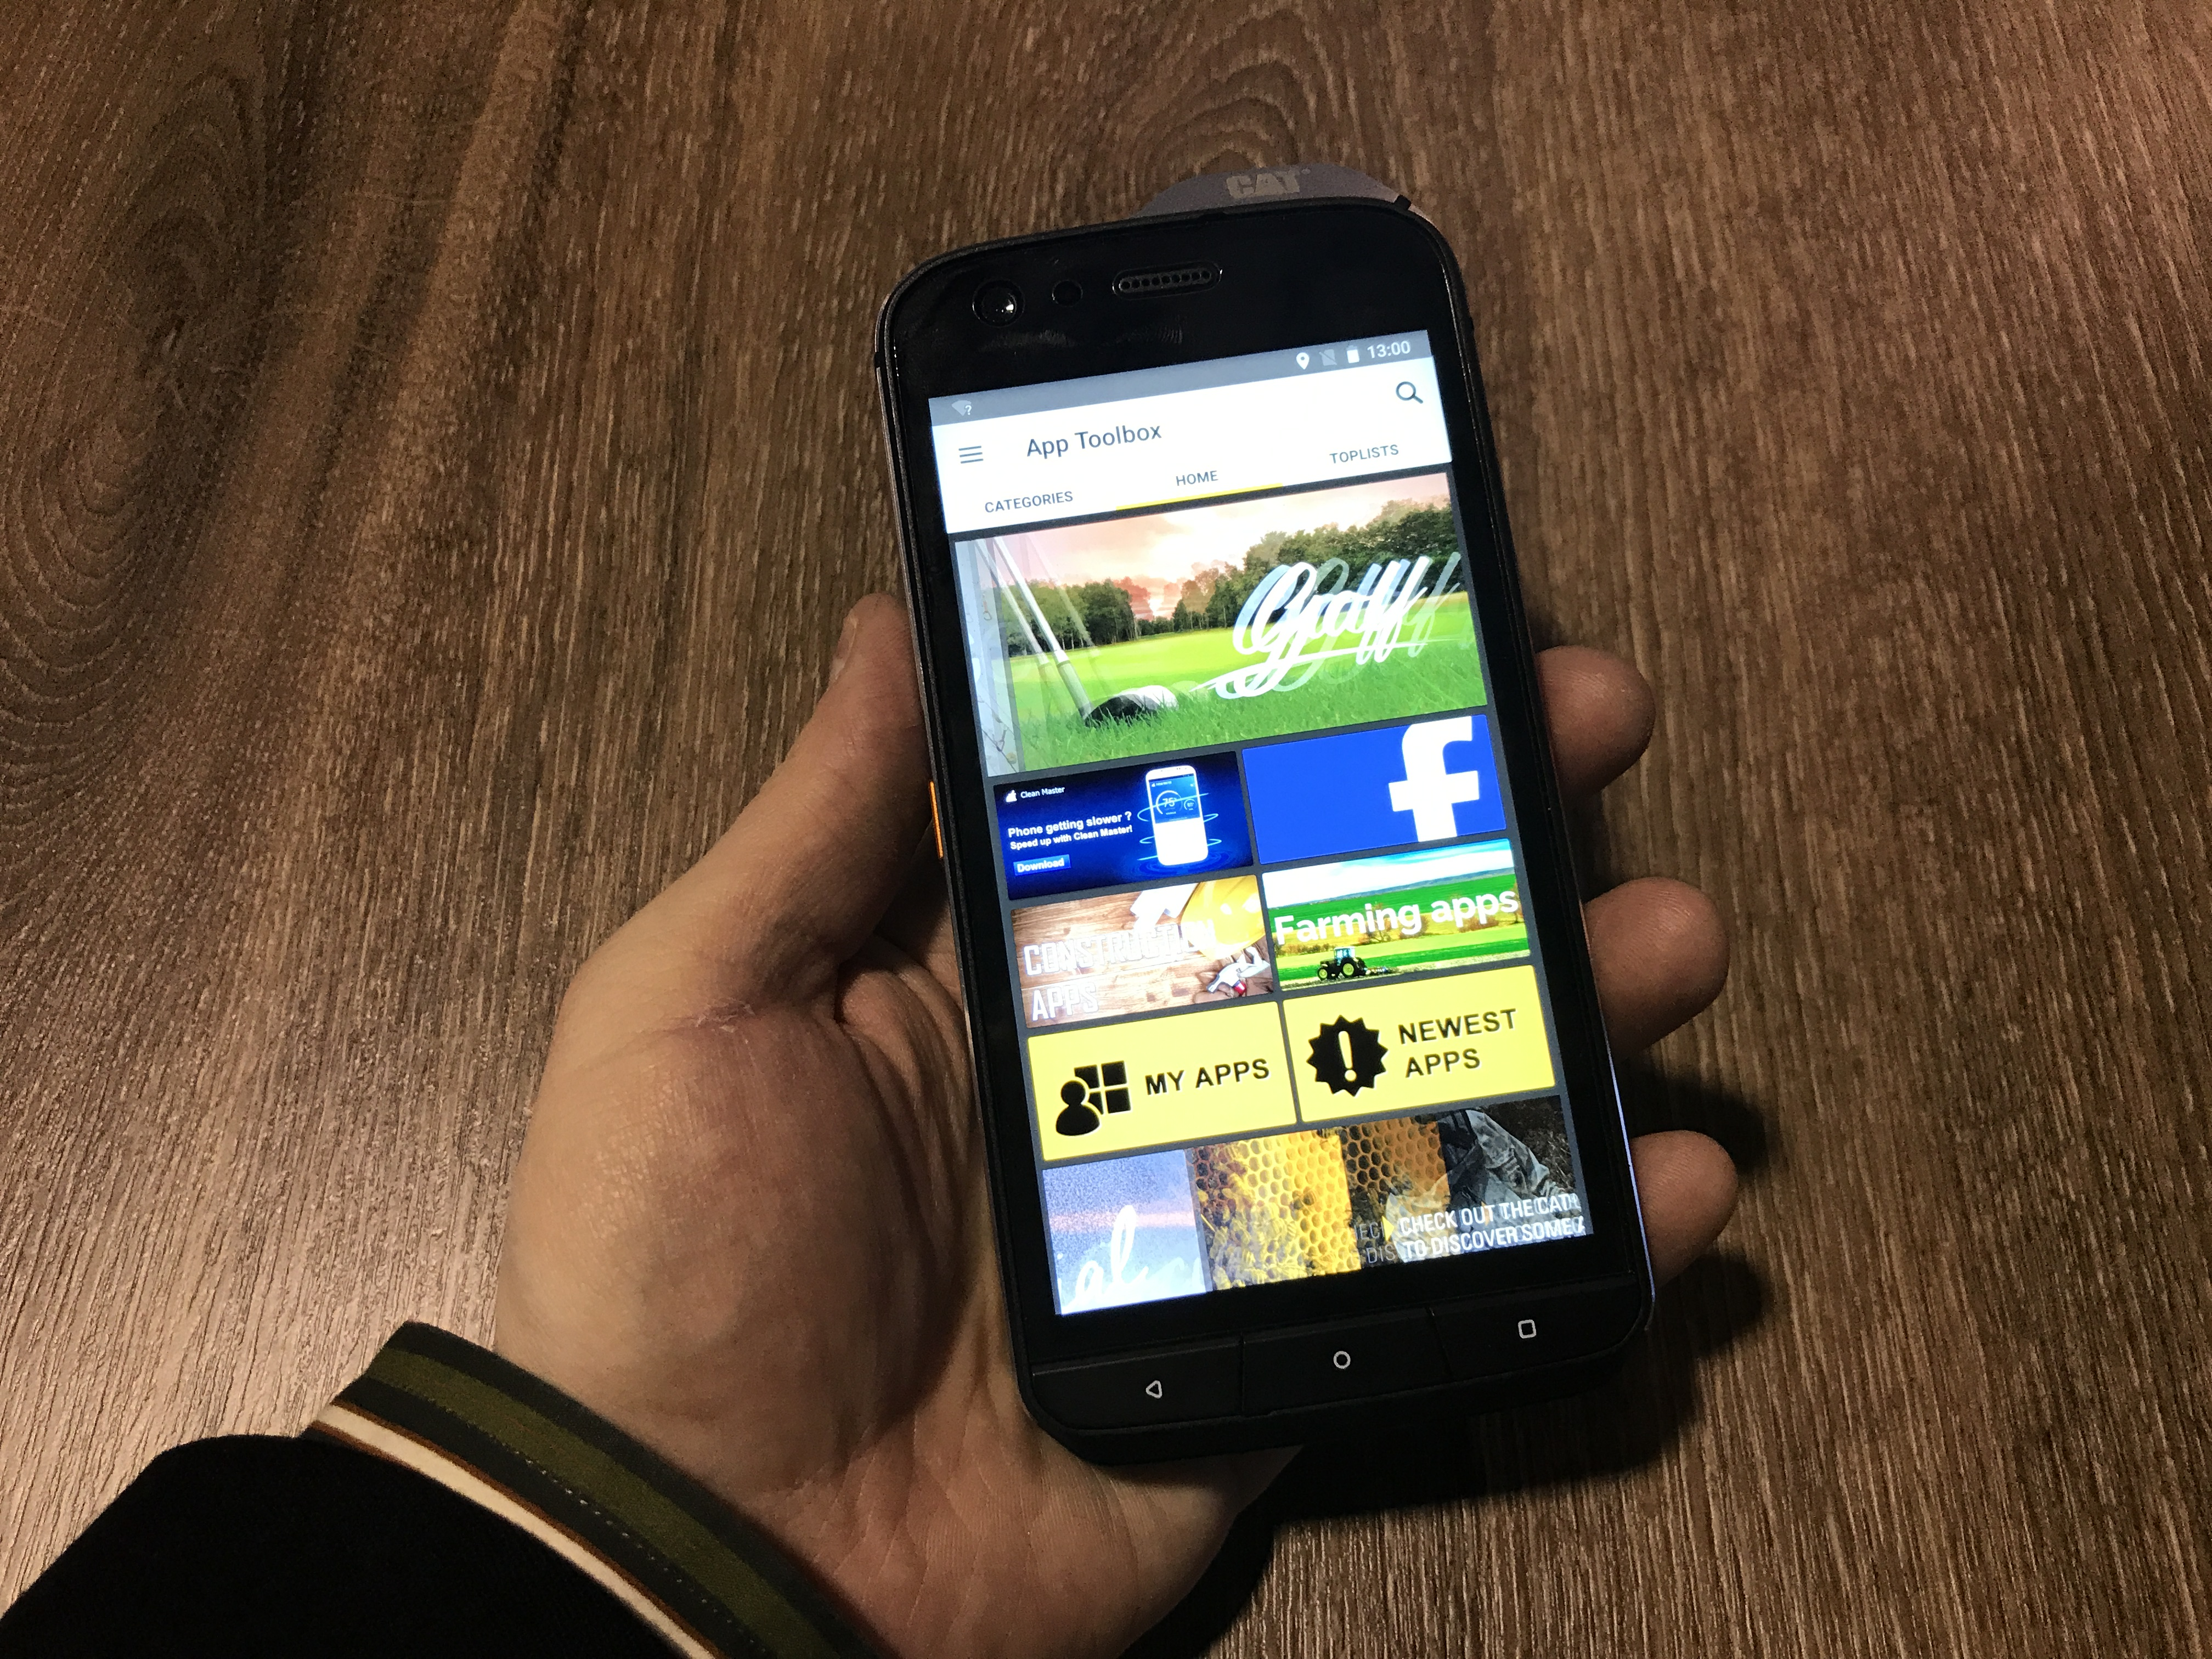 Cat S61 Smartphone Hands On First Impressions